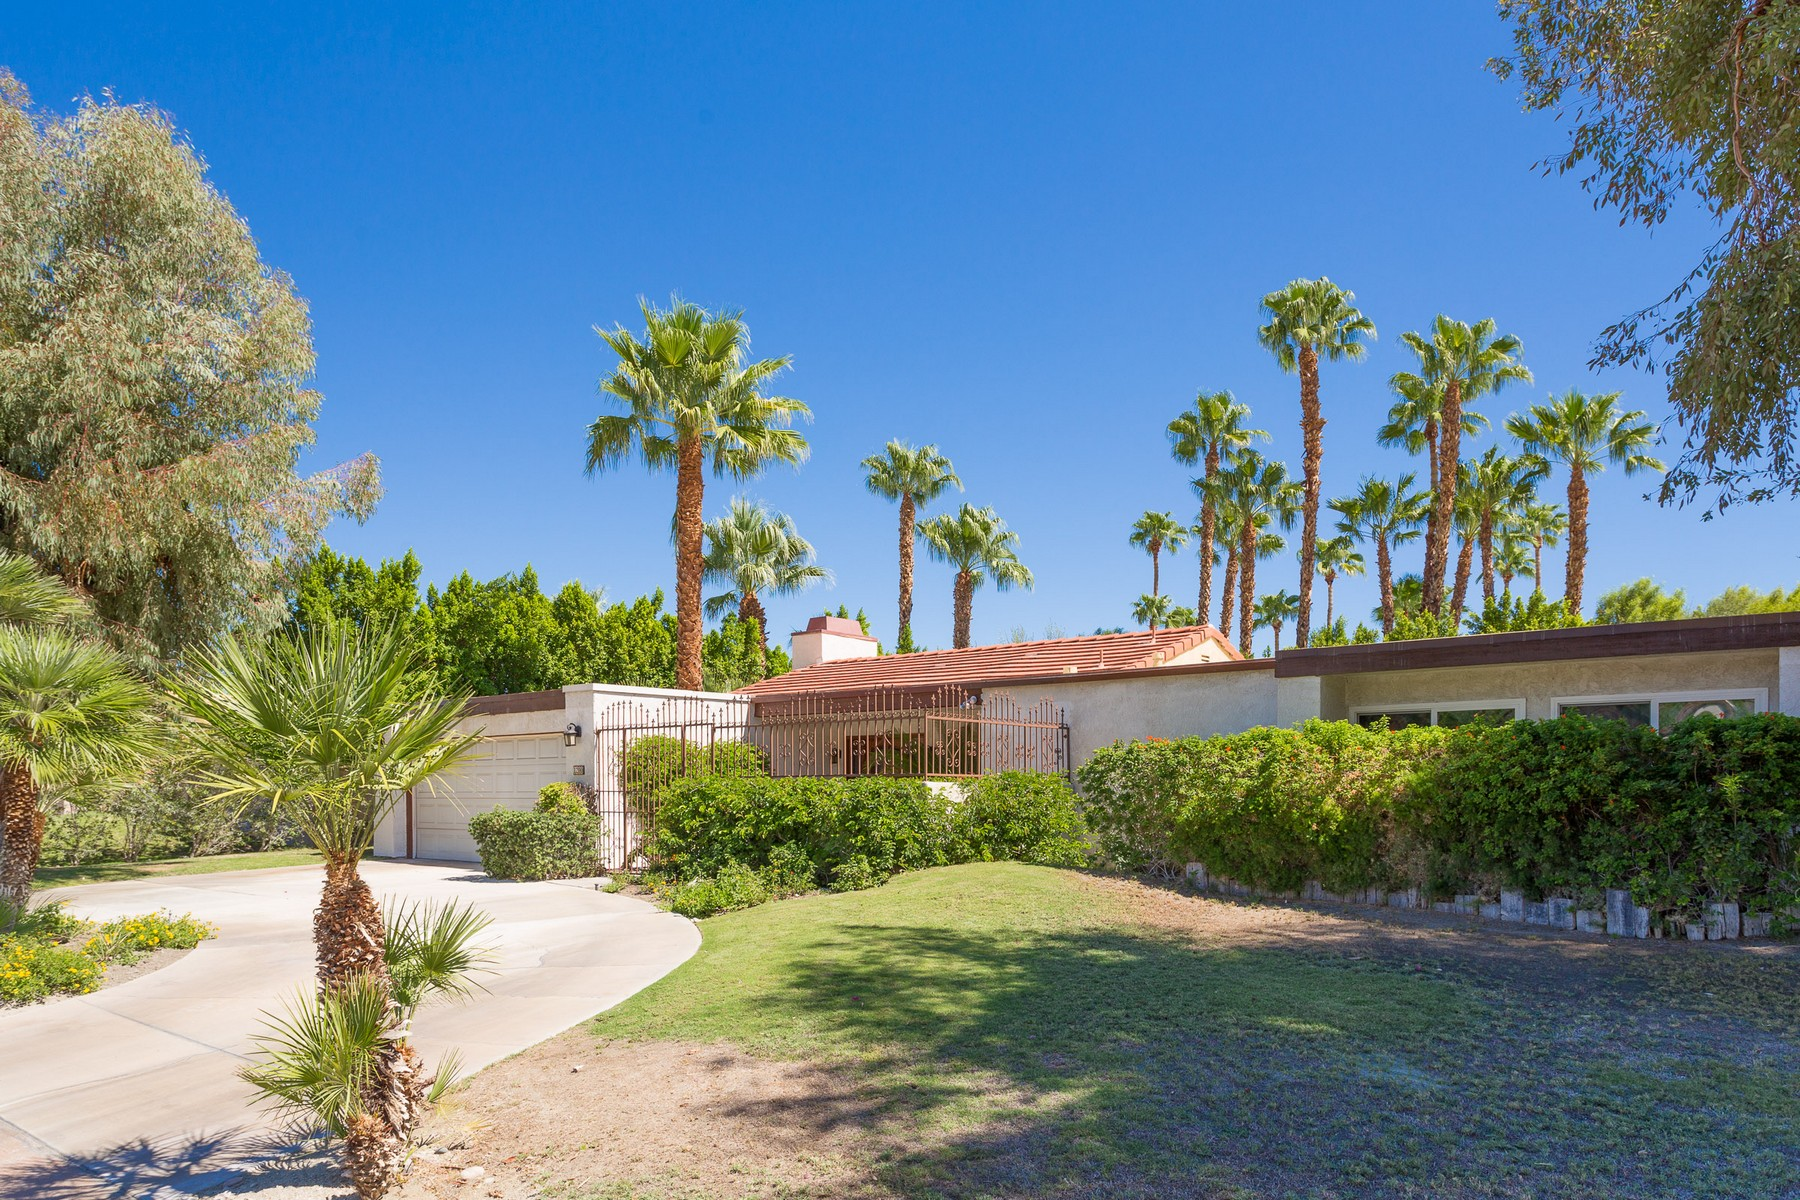 Single Family Home for Sale at 1200 North Avenida Caballeros Palm Springs, California 92262 United States